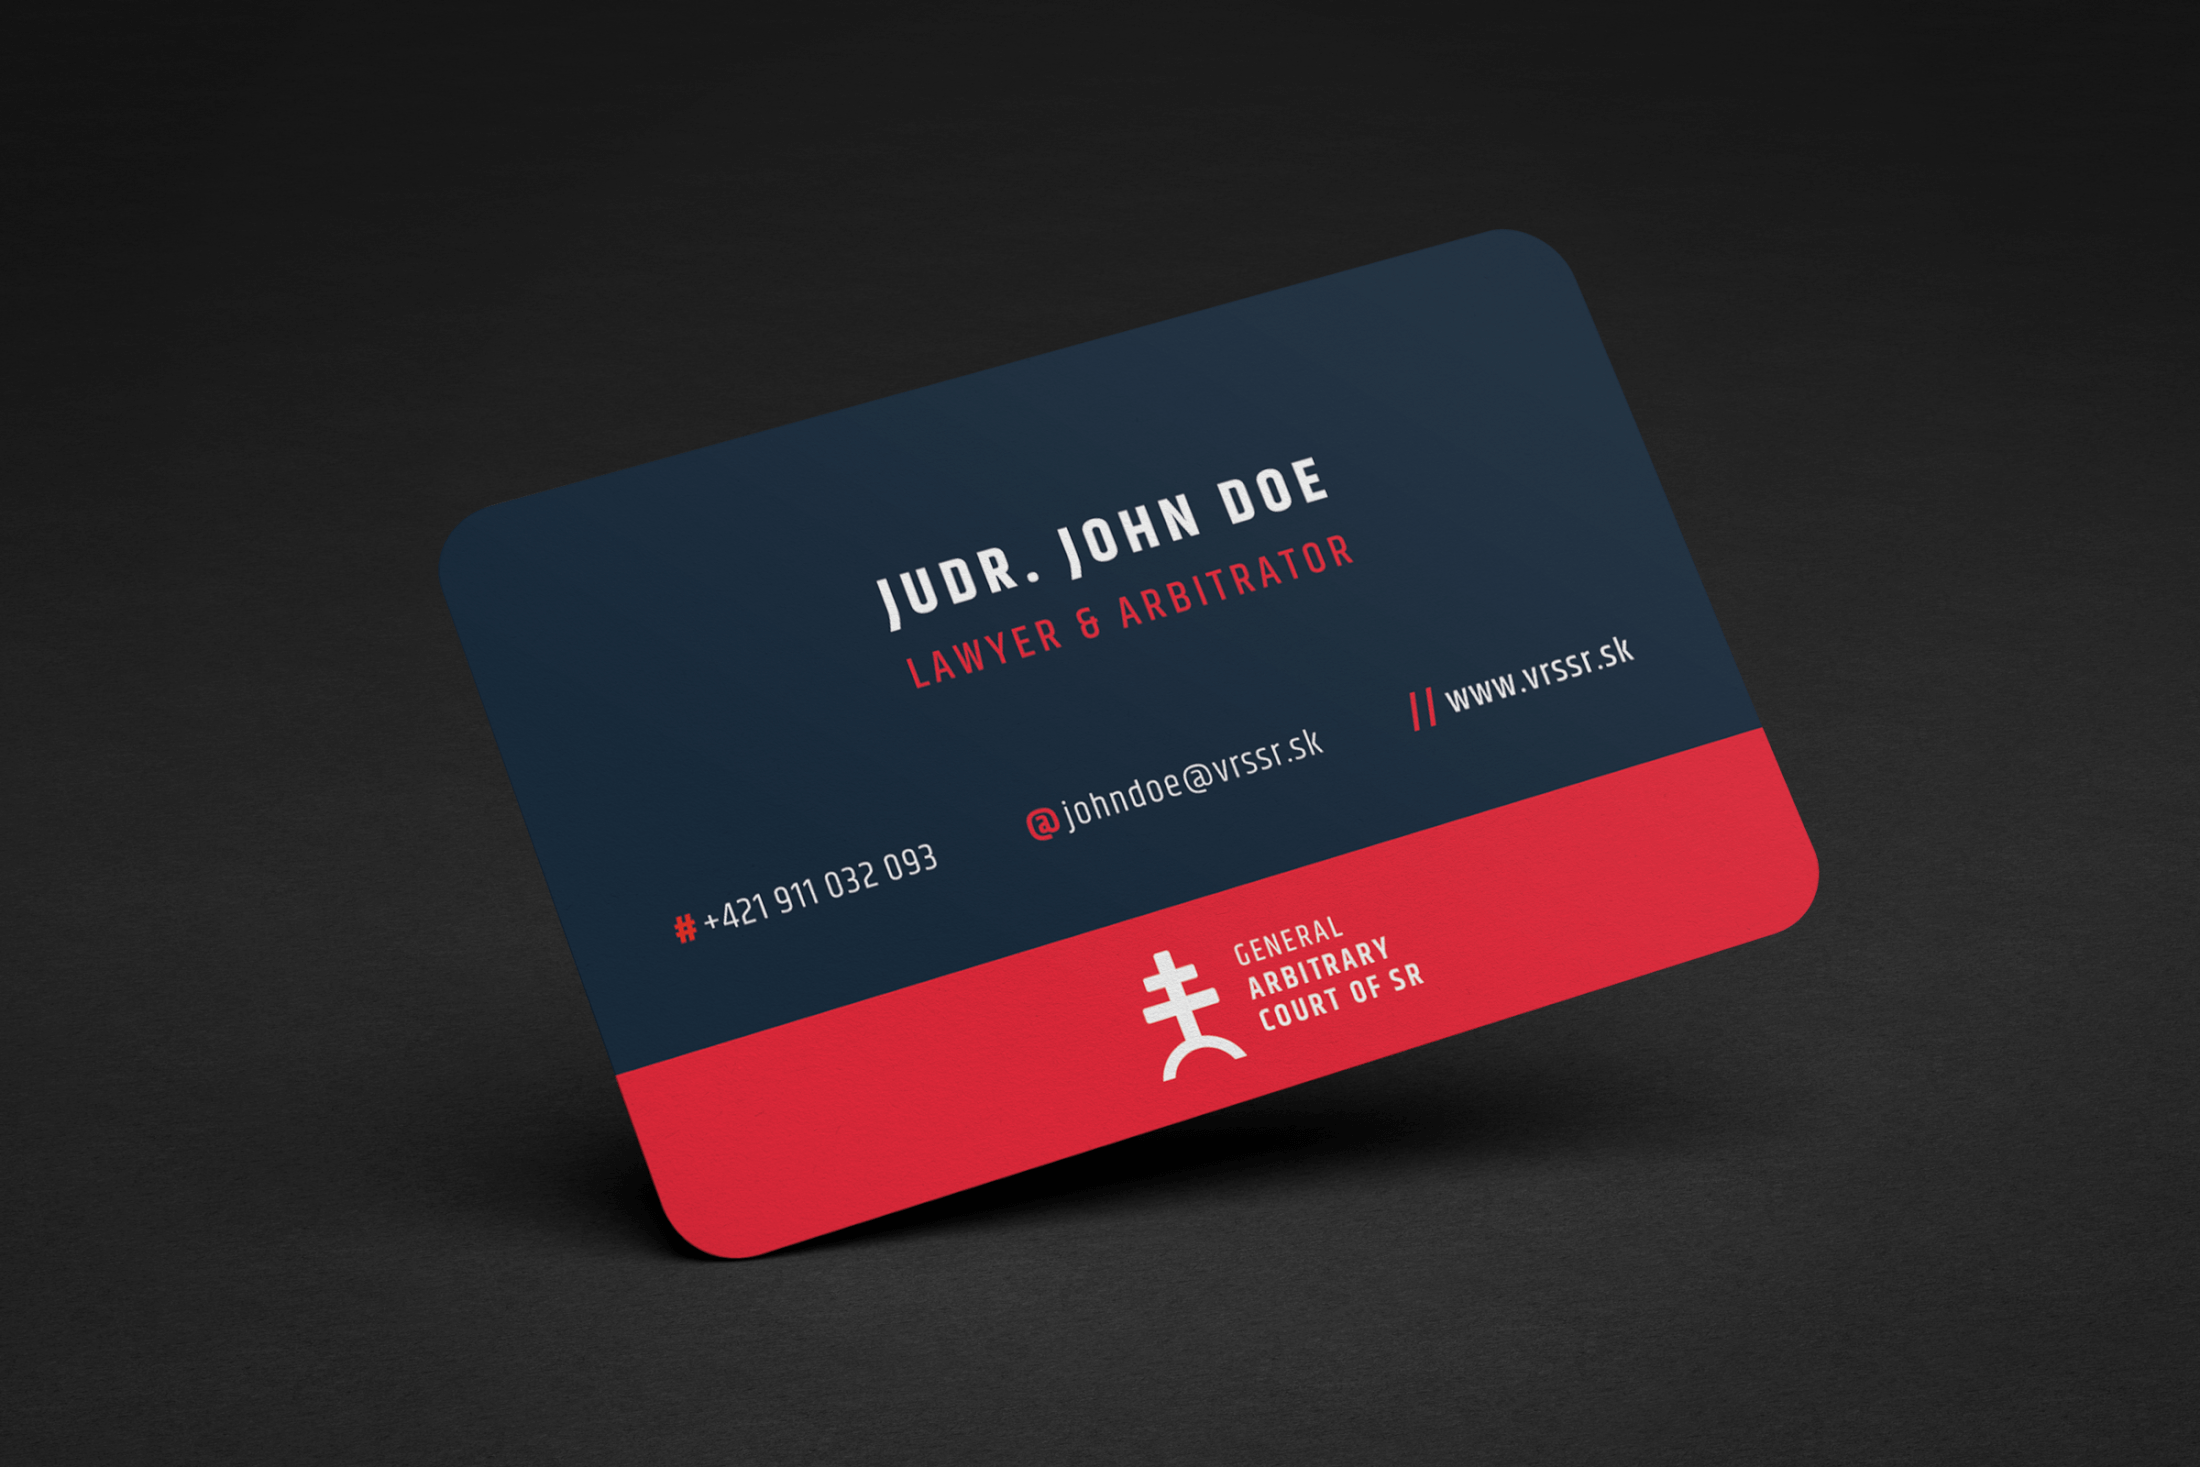 Court, Law Firm business card design and corporate identity design